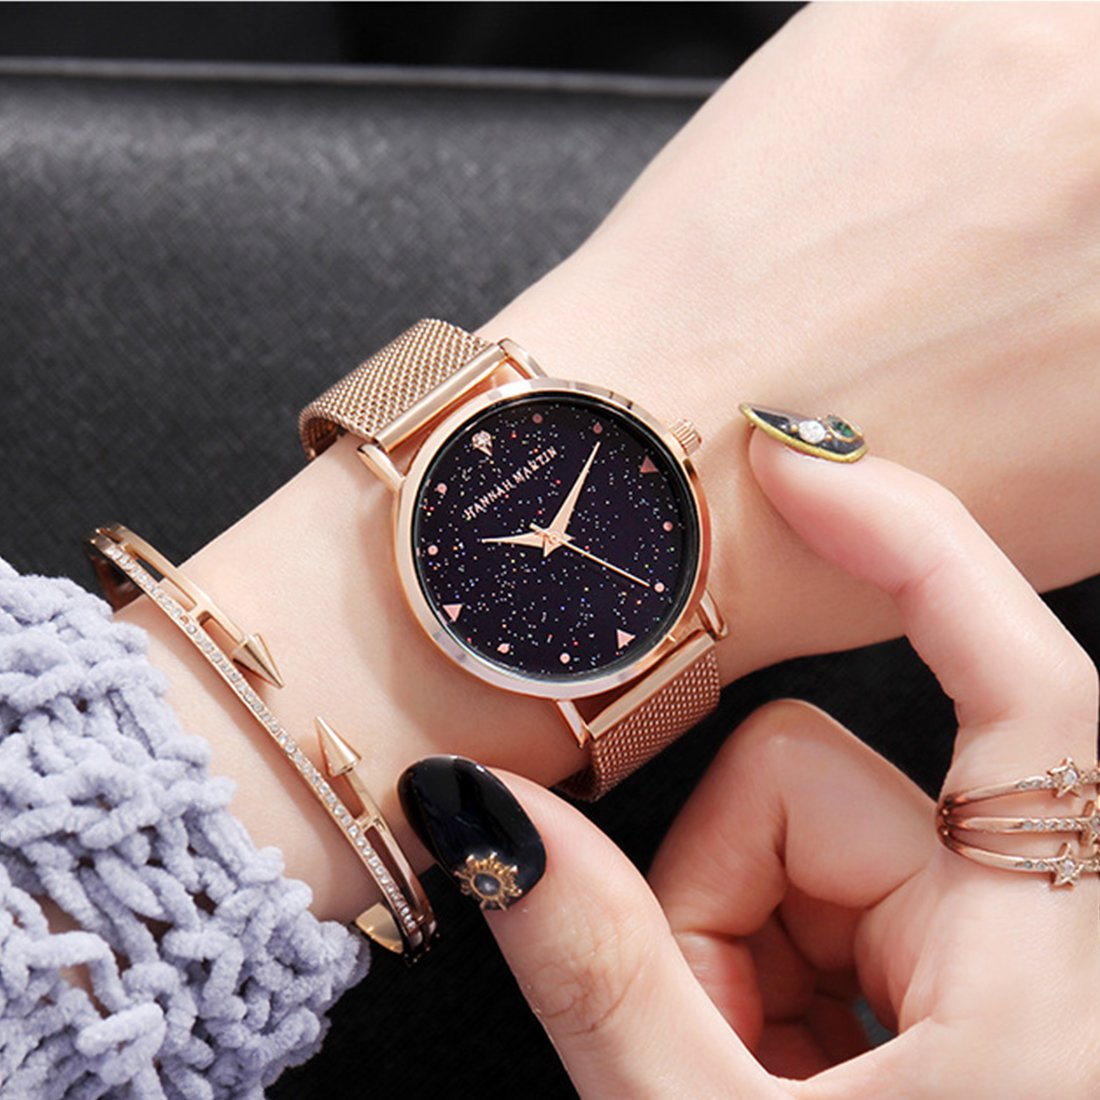 Amazon.com: Womens Fashion Watches for Sale Rose Gold Mesh Stainless Steel Bracelet Wrist Watch Starry Sky Rhinestone Face Luxury Lady Watch 36mm ...